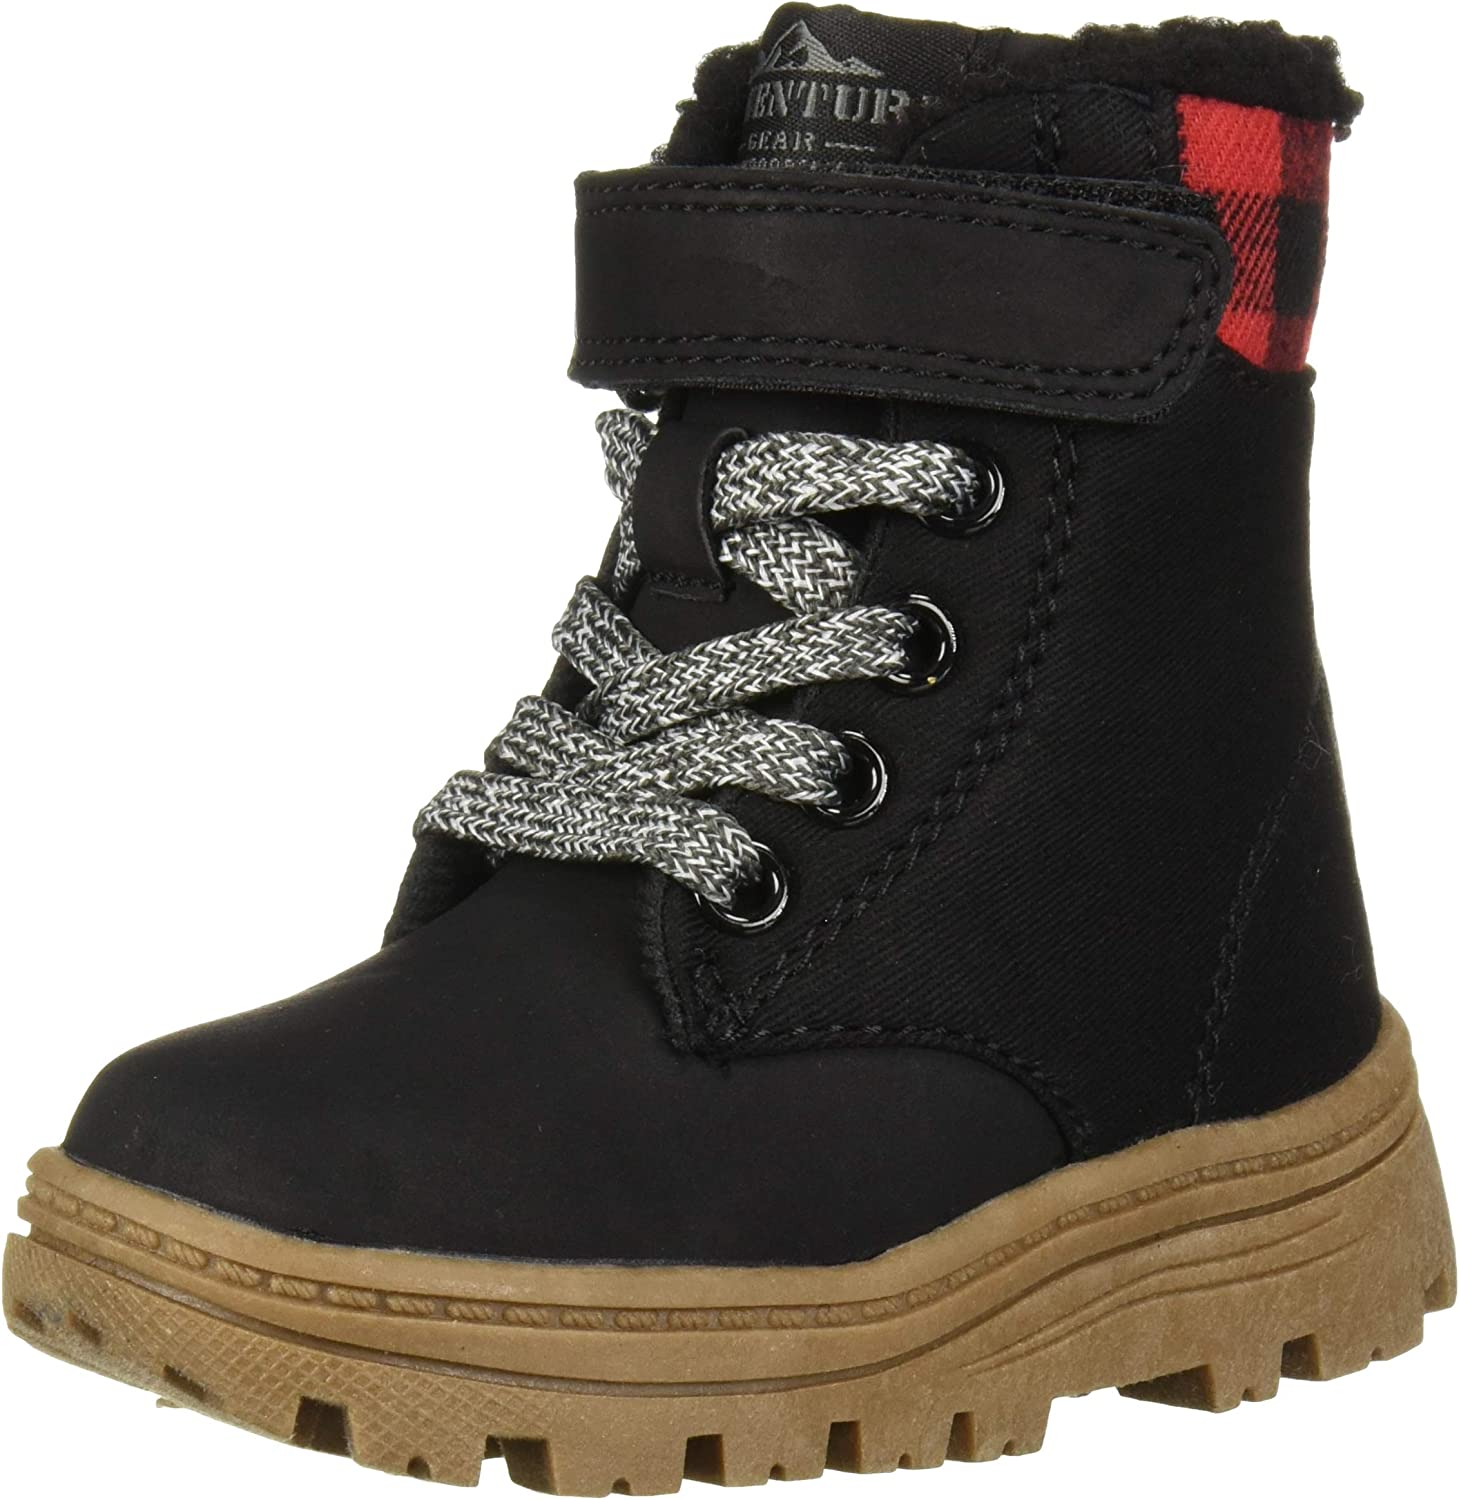 Carter's Women's Cali Ankle Many popular brands Boot 10 Limited time cheap sale